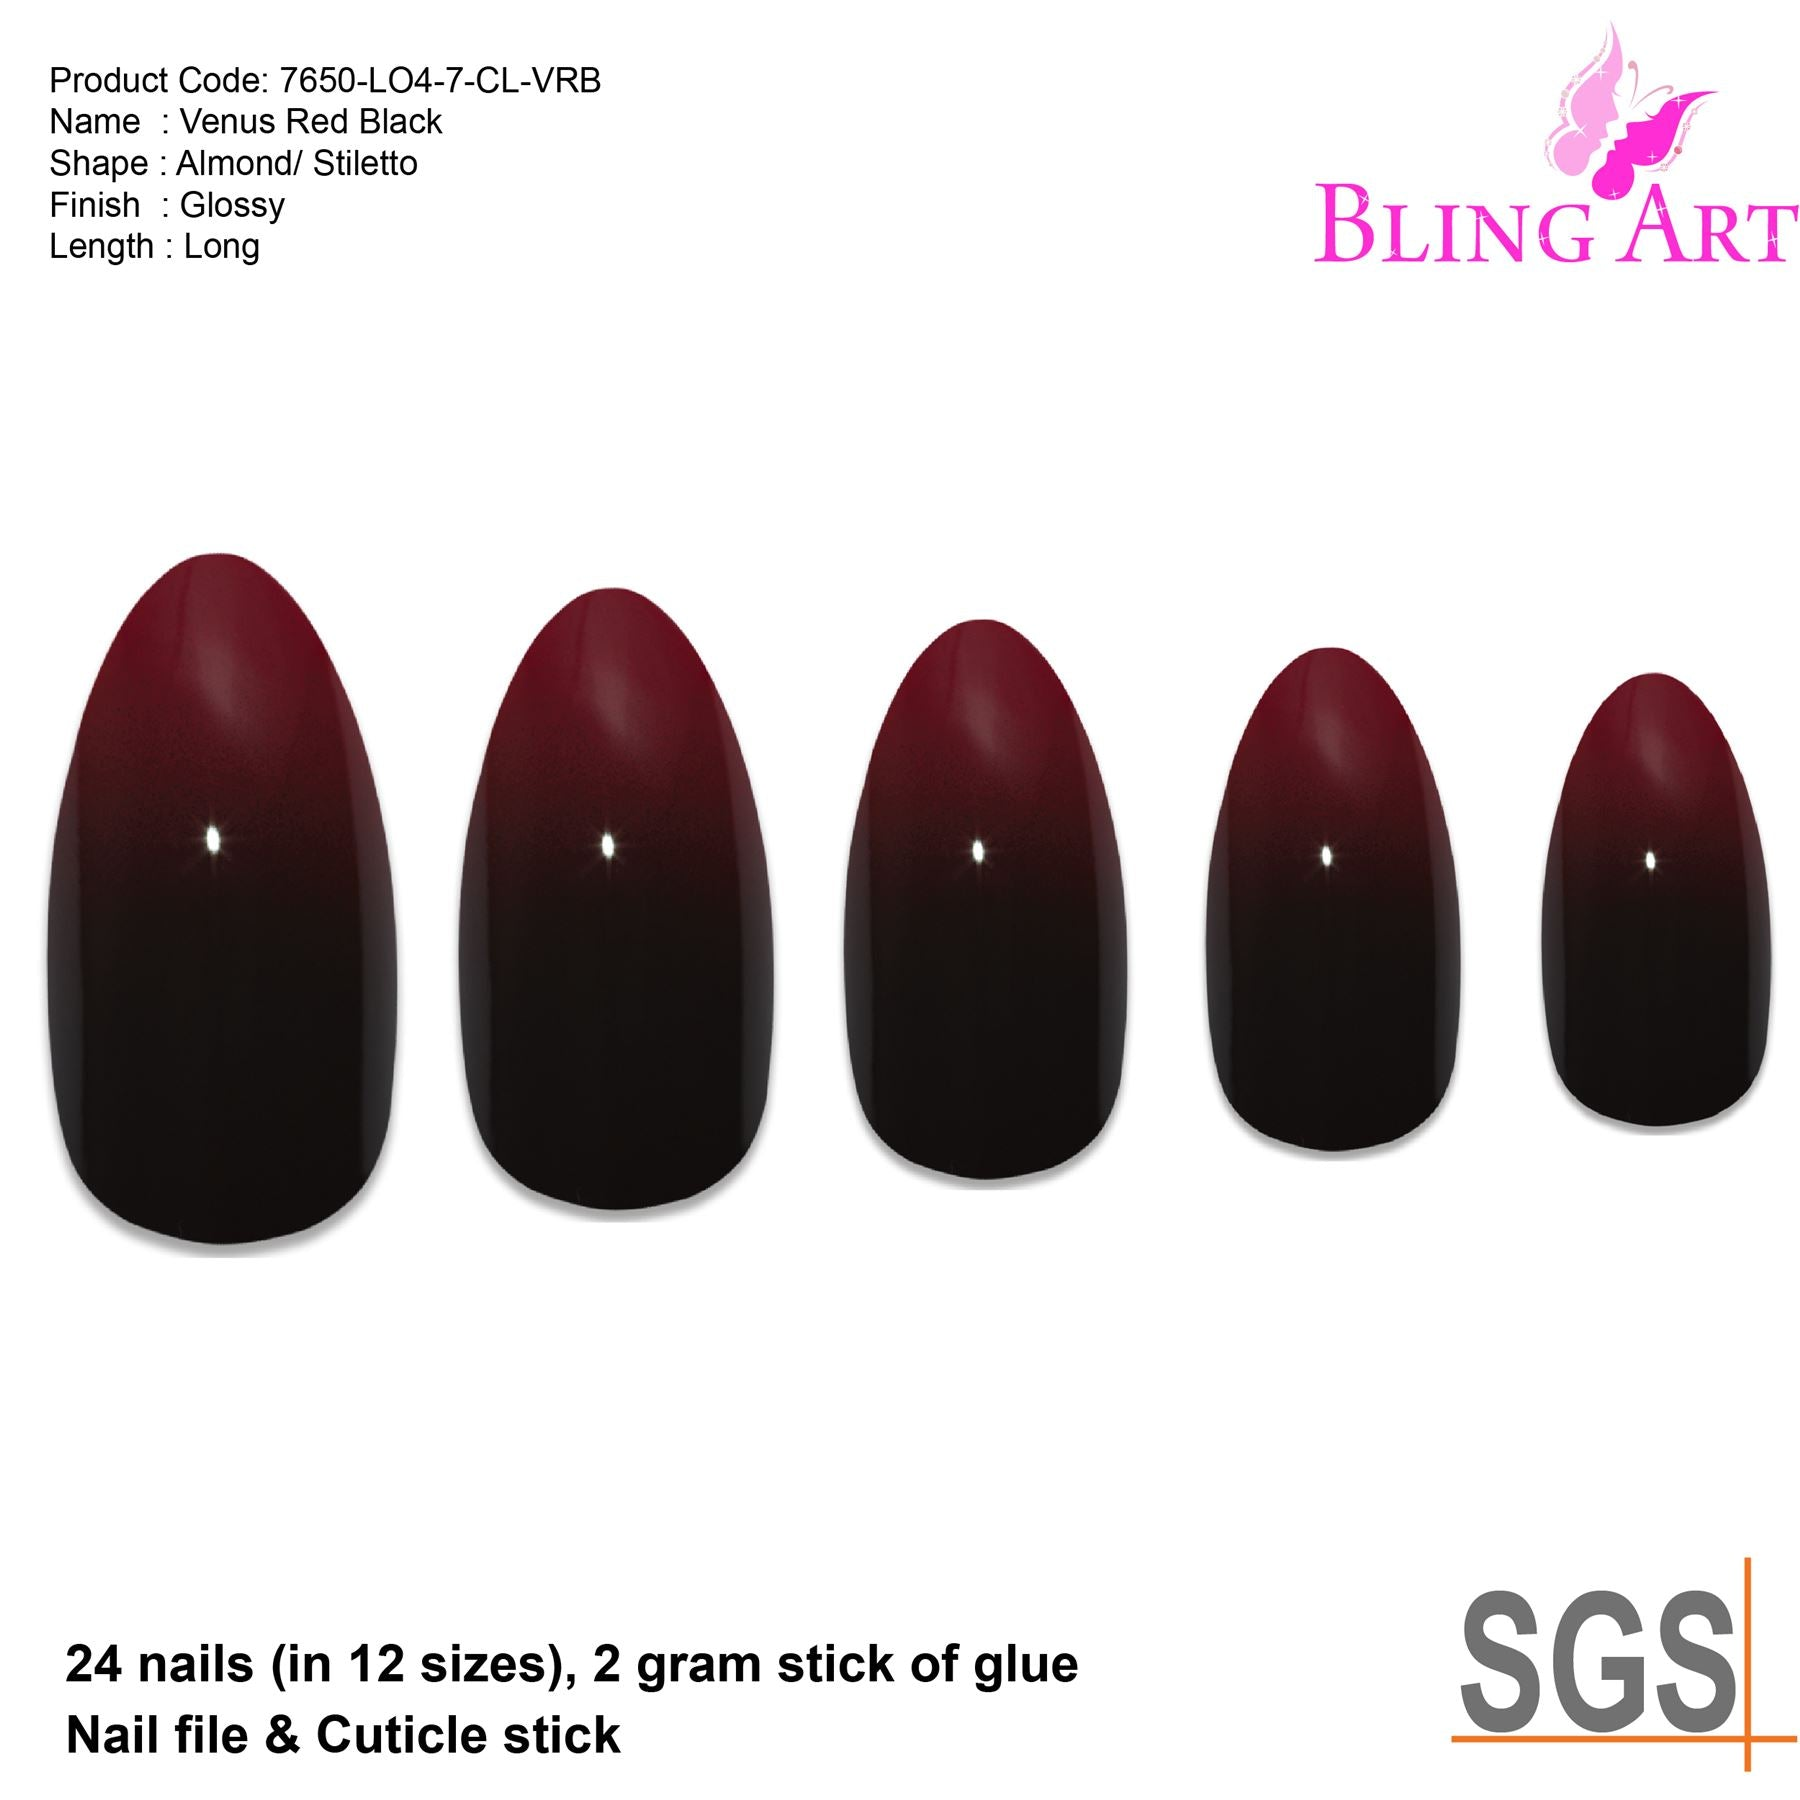 False Nails by Bling Art Red Black Almond Stiletto Acrylic 24 Fake Long Tips